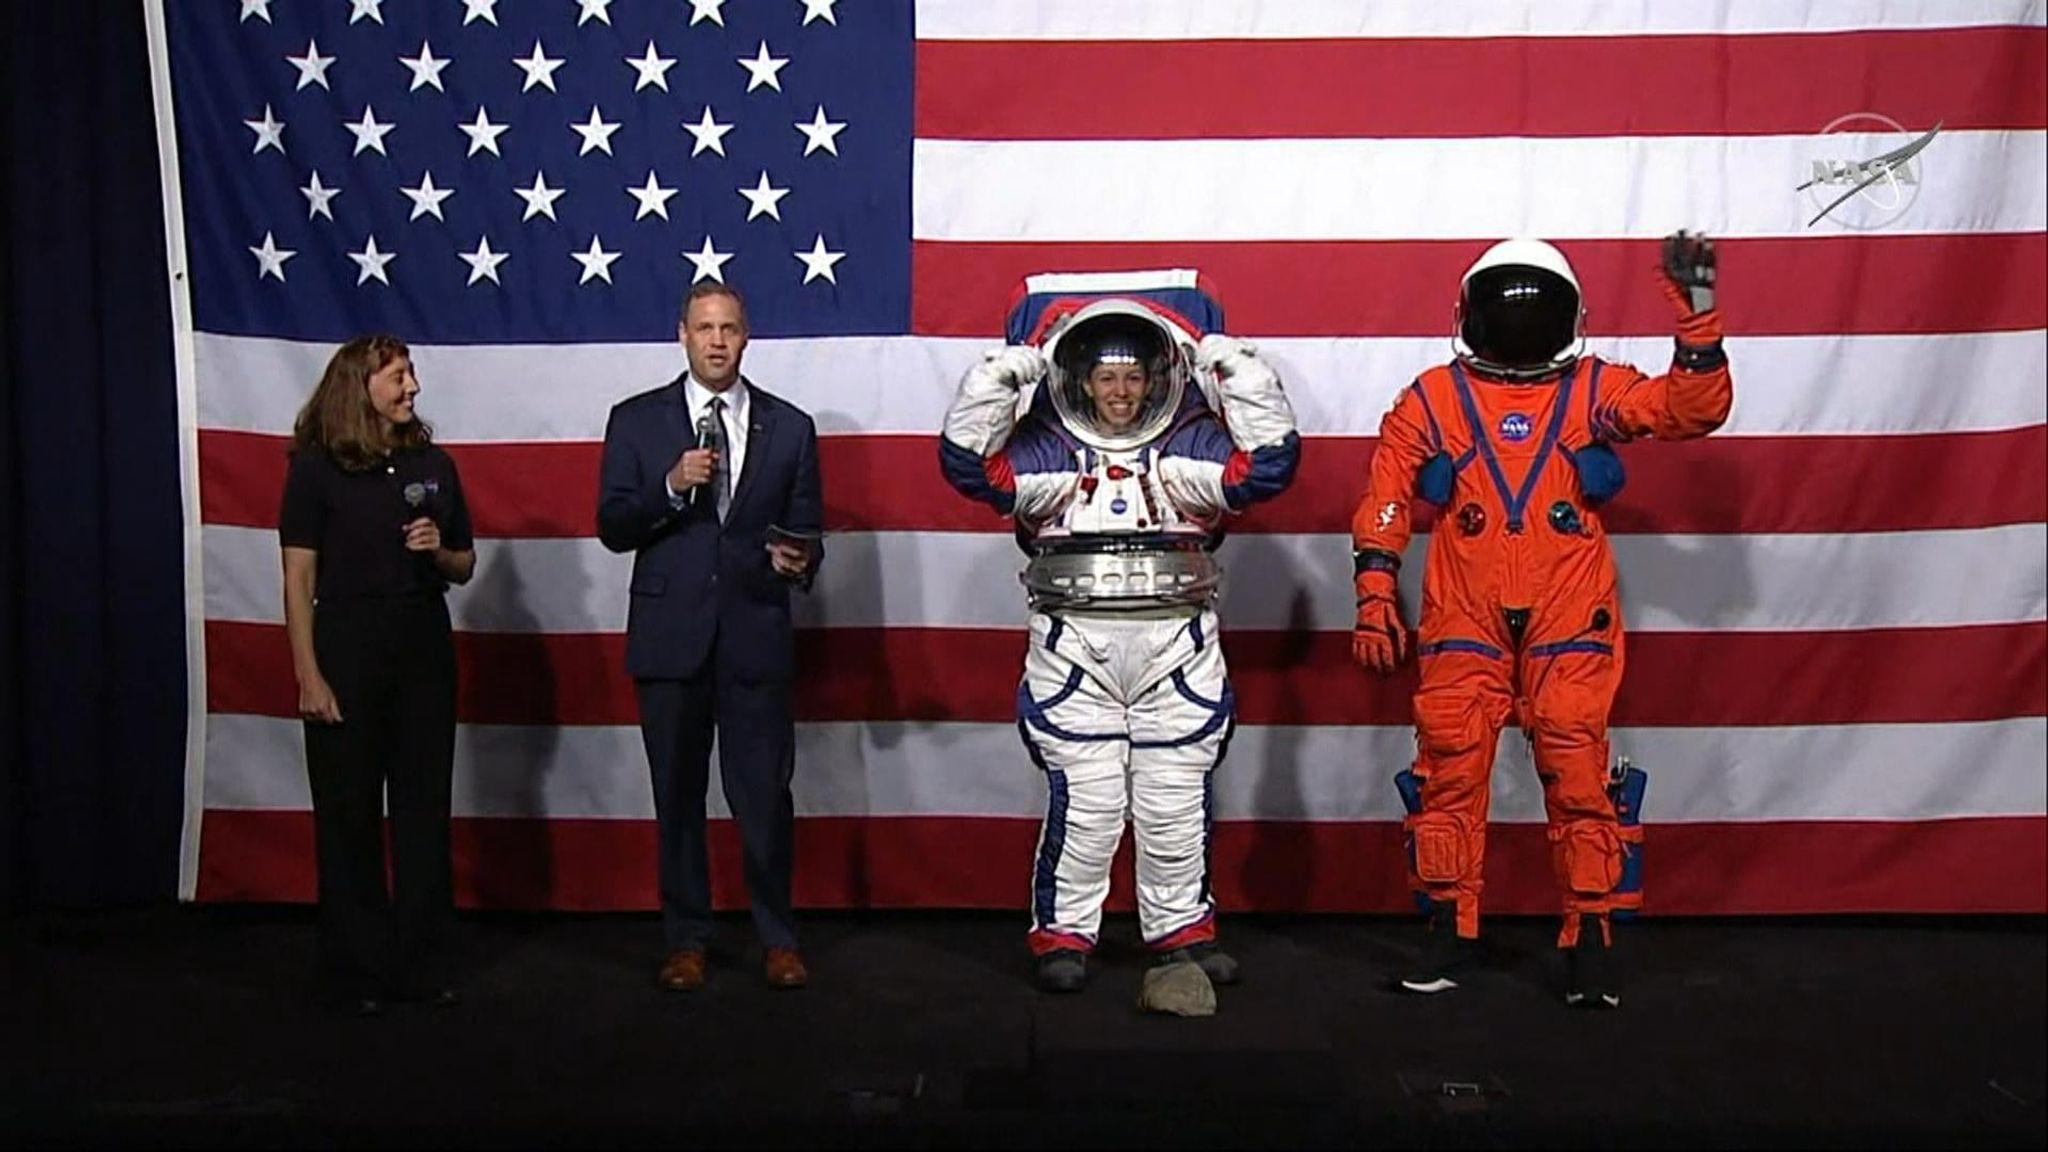 NASA unveils new spacesuits for 2024 moon mission